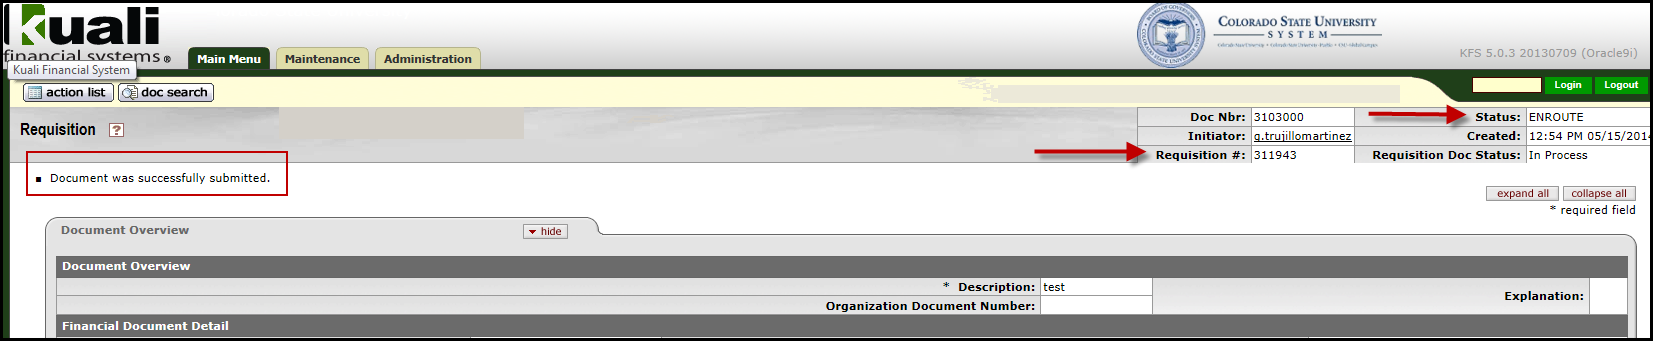 When requisition is complete, click the submit button to start the workflow approval process for your document.